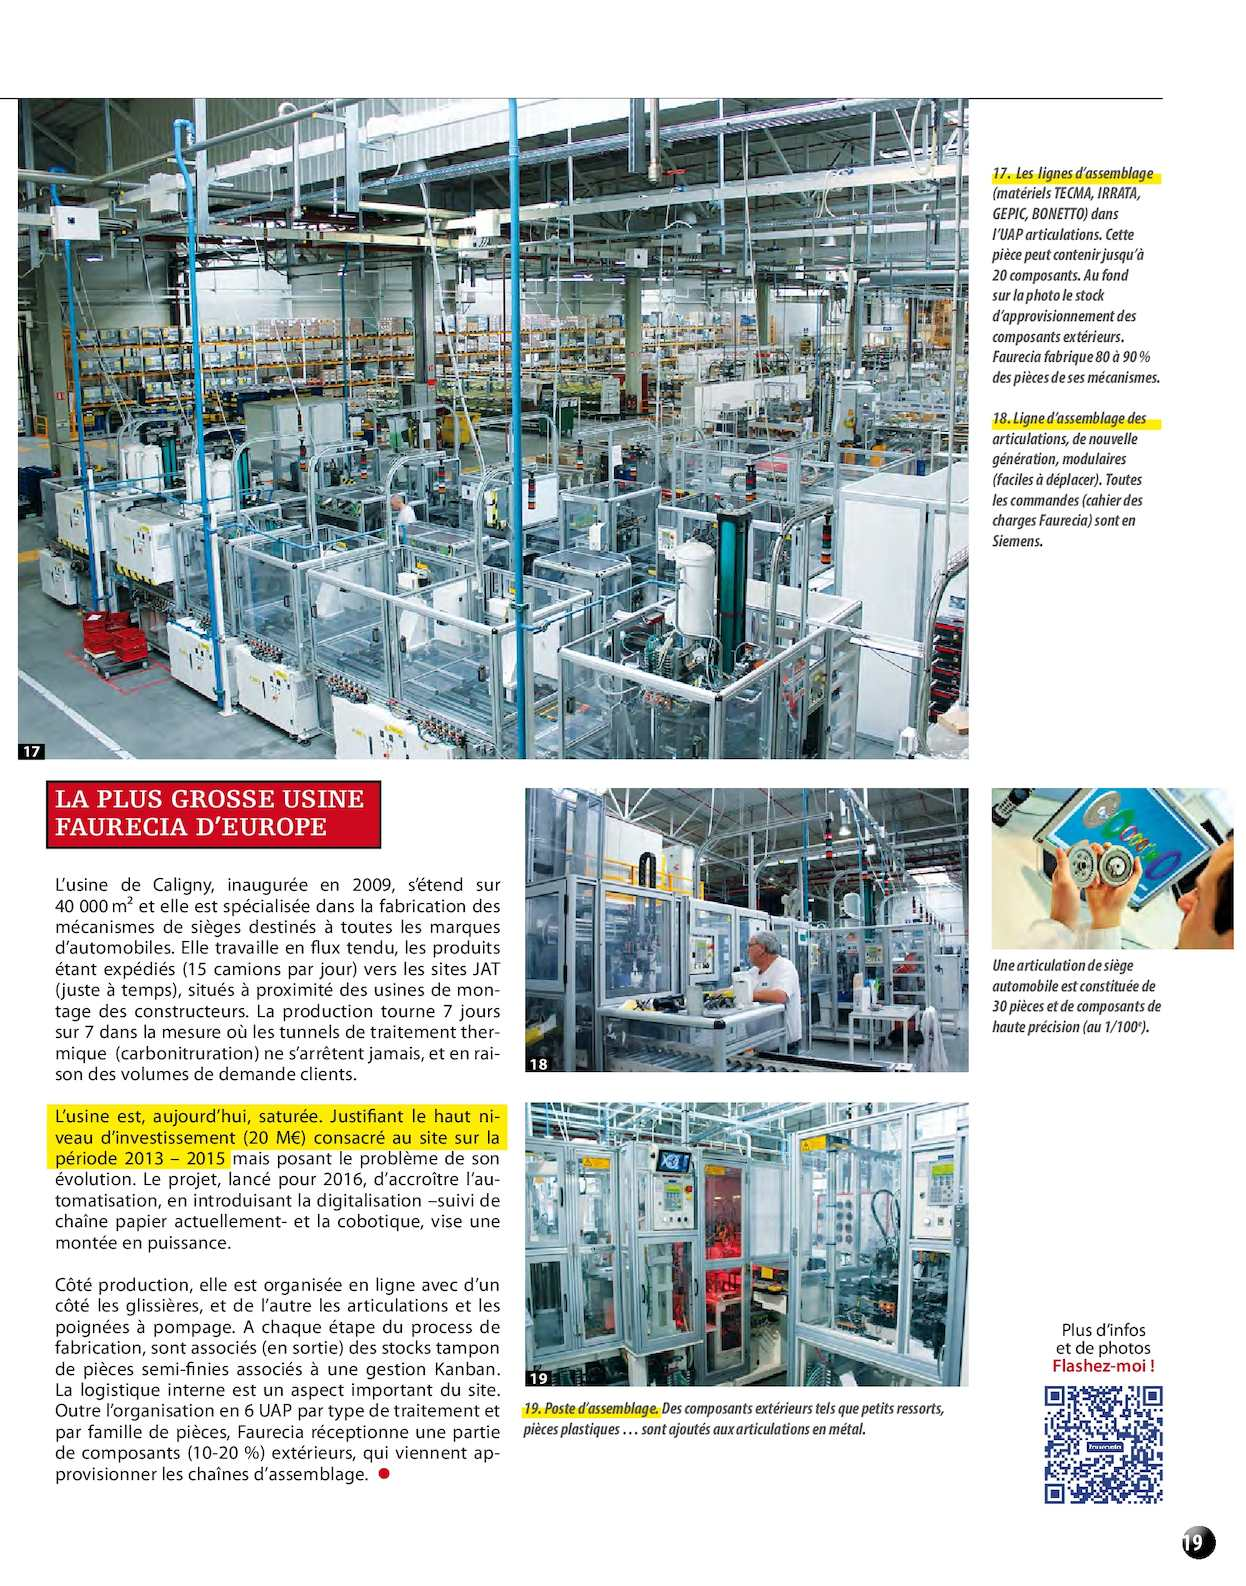 SEPEM Industries Nord-Ouest - Le Mag - CALAMEO Downloader